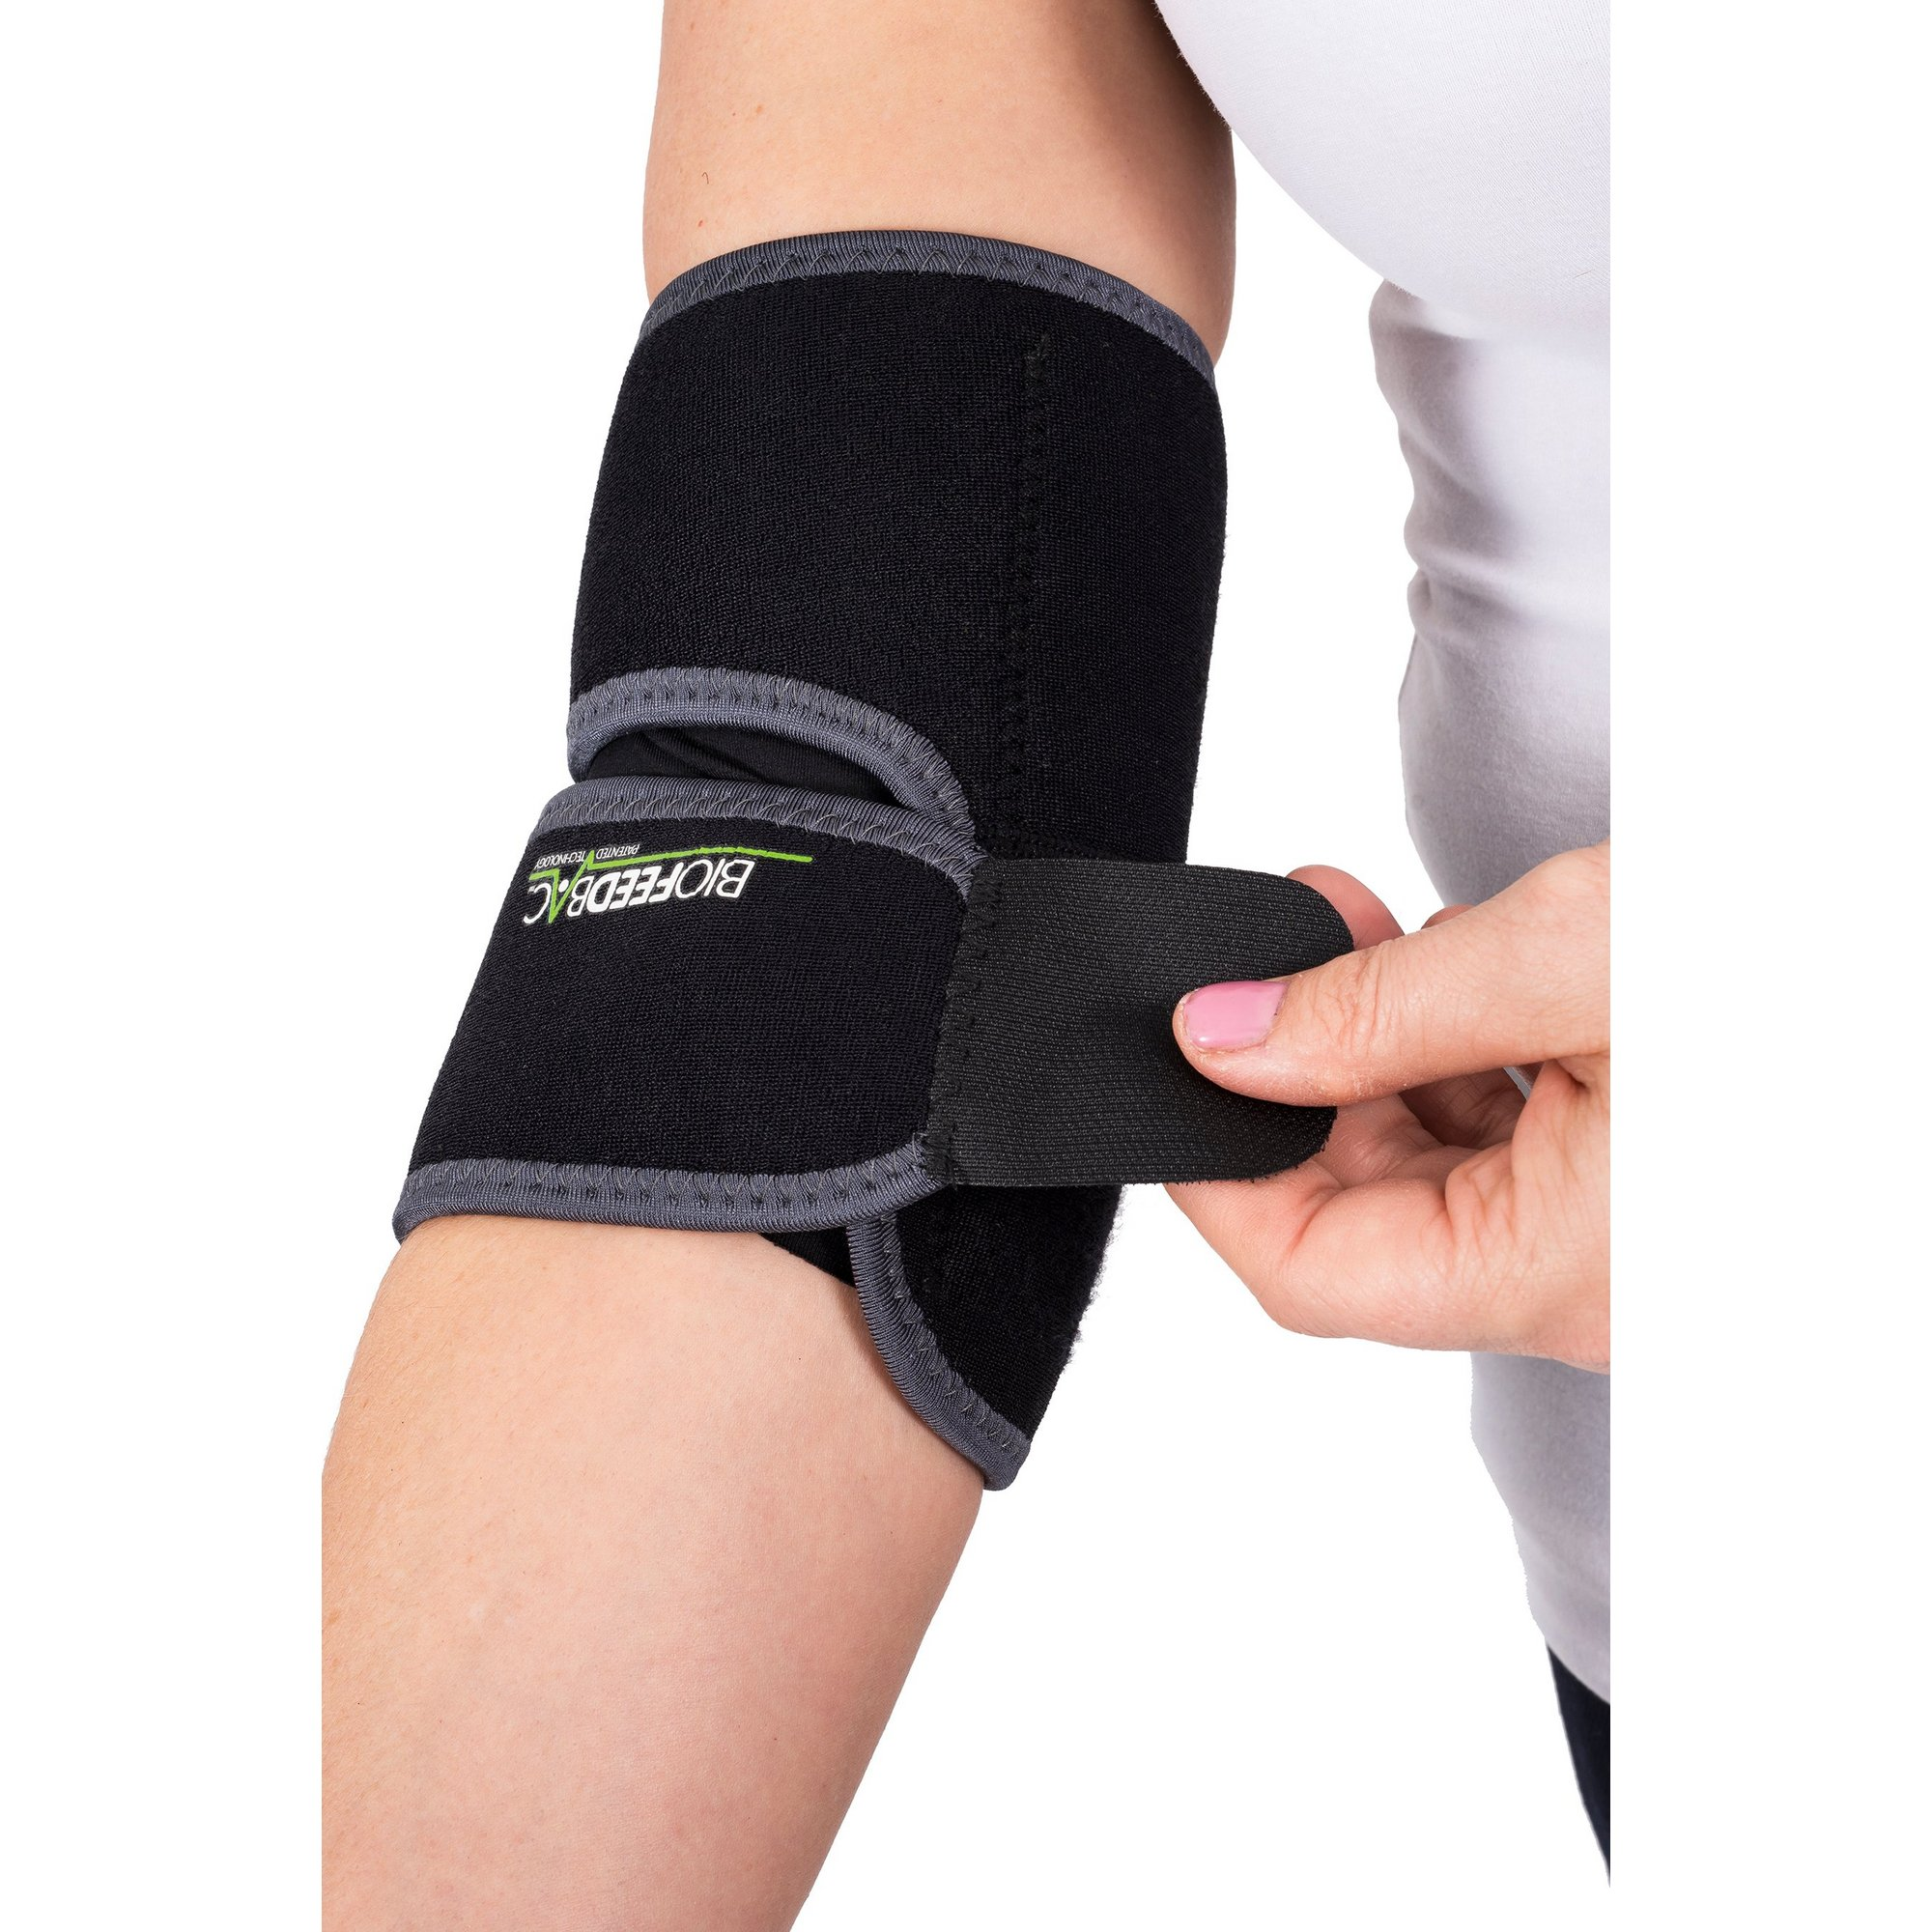 Image of Biofeedbac Elbow Support